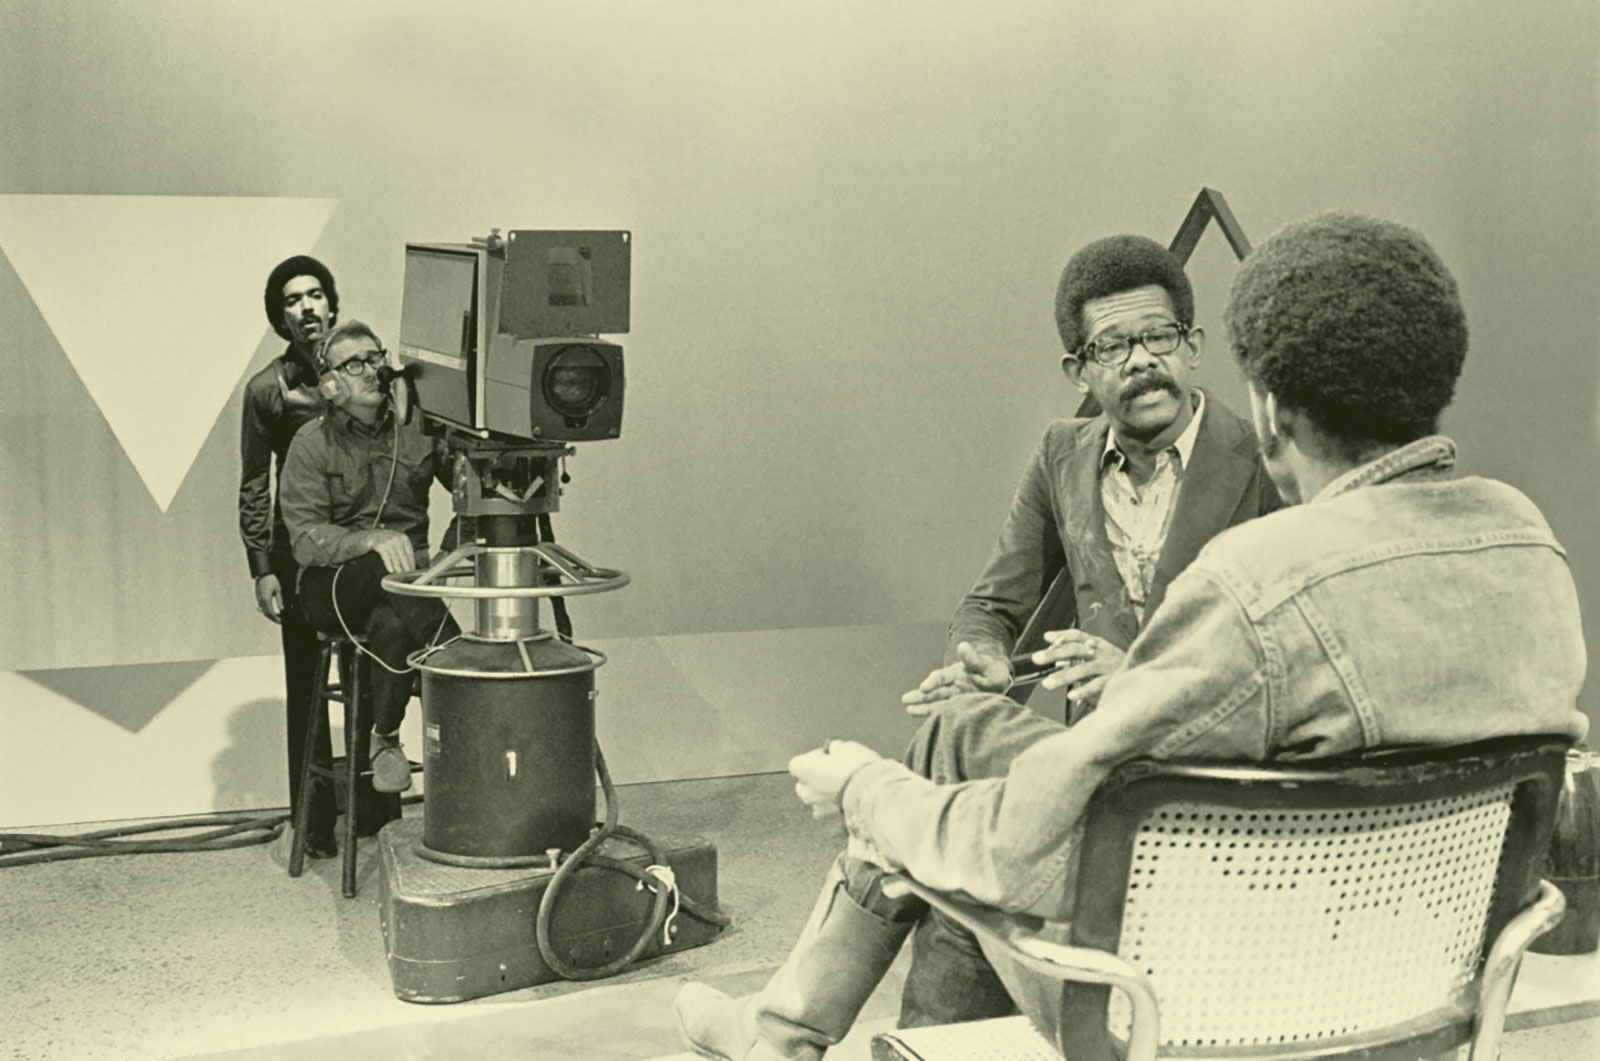 On the set of SOUL! with Ellis Haizlip interviewing Melvin Van Peebles [Credit: Chester Higgins]